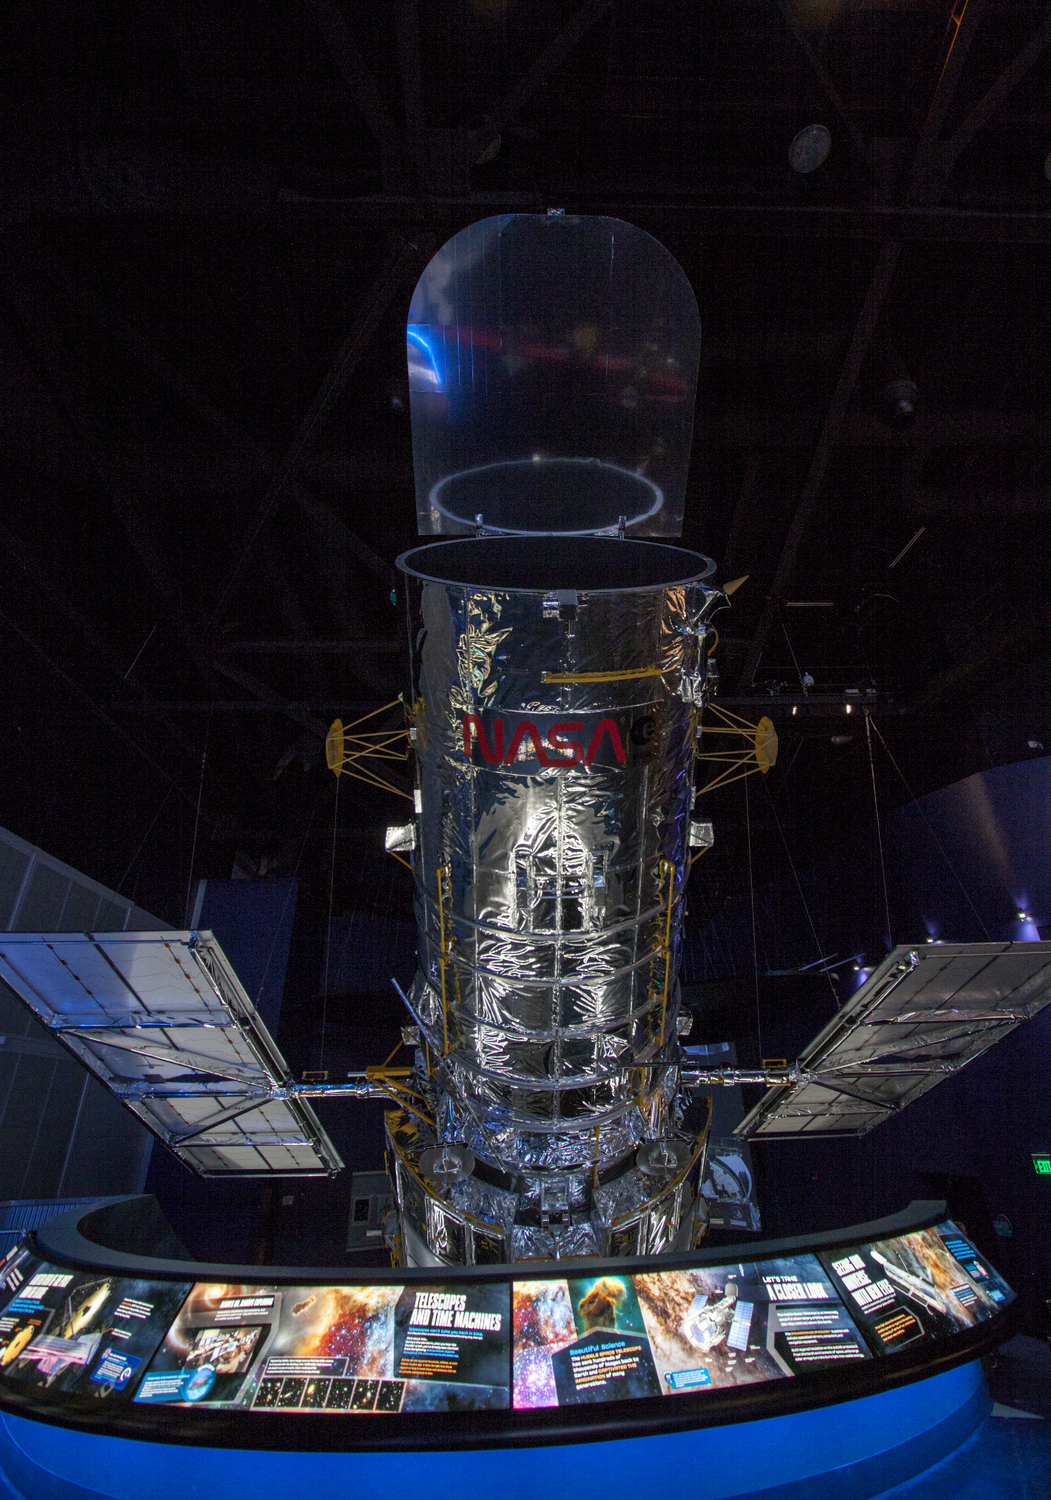 Full-Scale Replica of Hubble Telescope